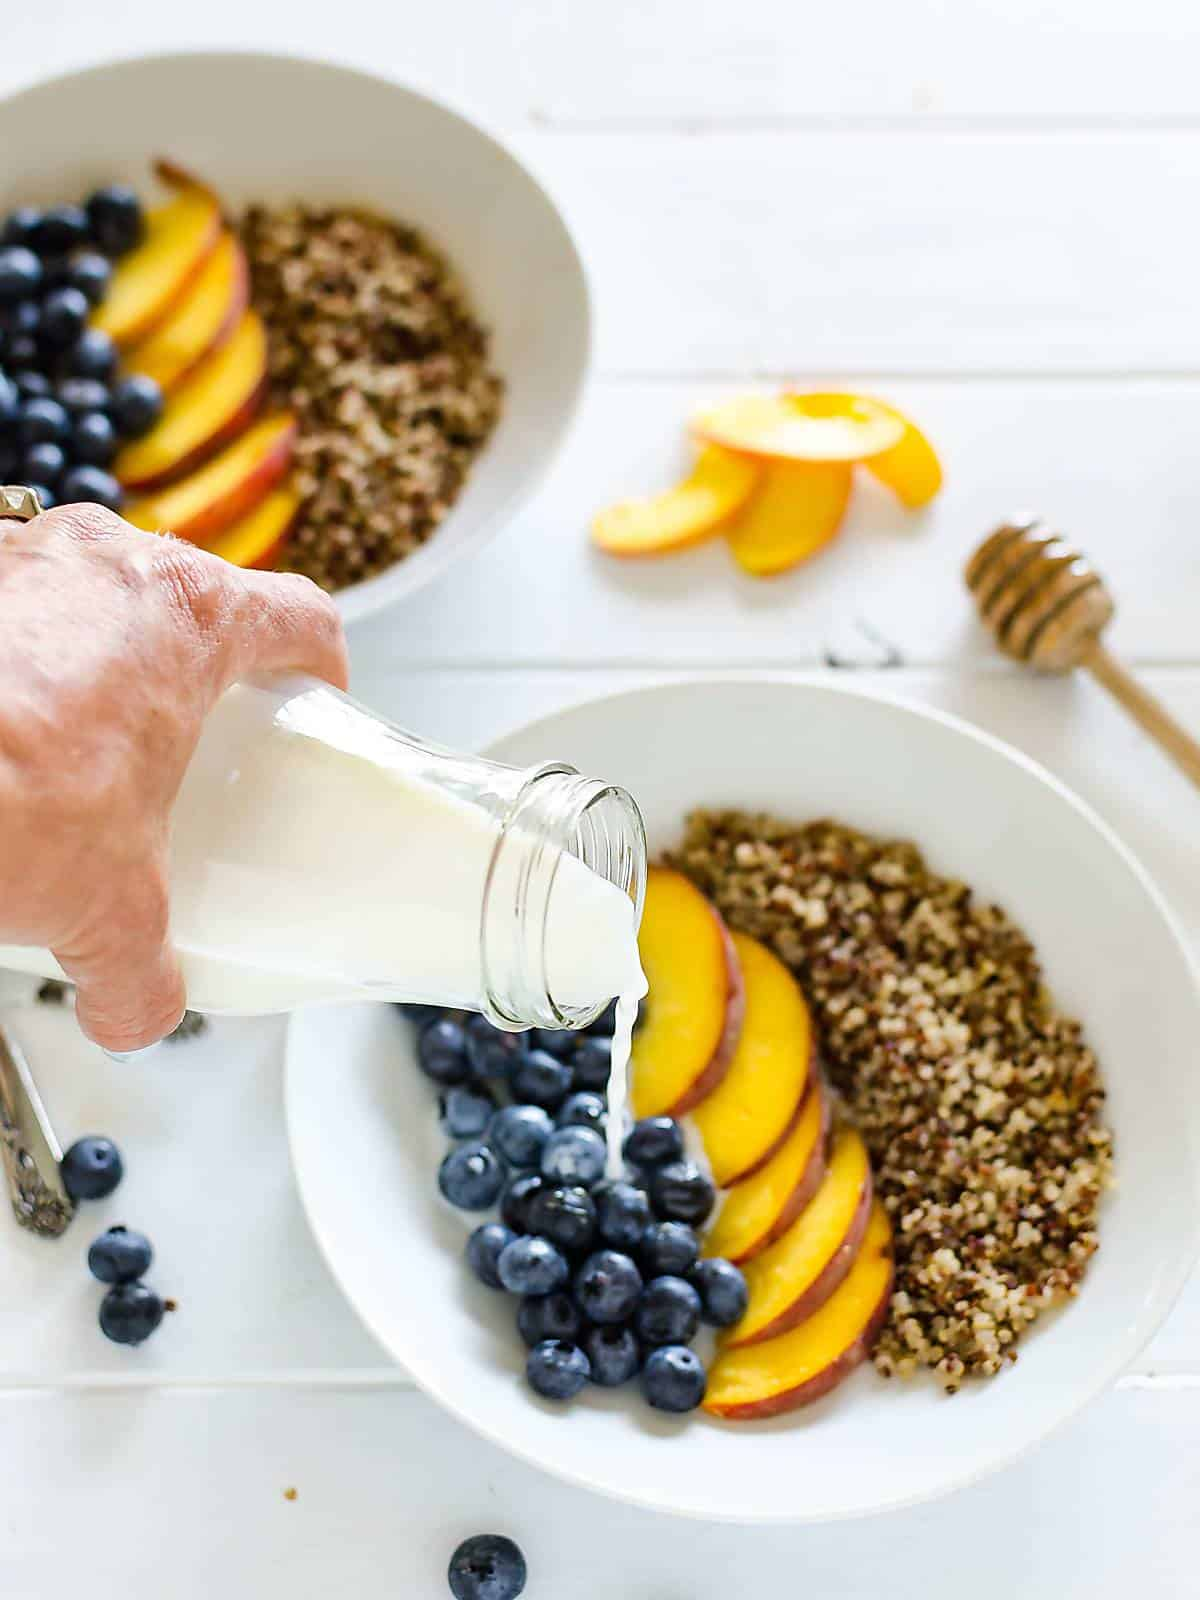 a hand pouring milk over a bowl of blueberries, peaches, and quinoa. another bowl in the back ground, a few sliced peaches on the table and a honey dipper